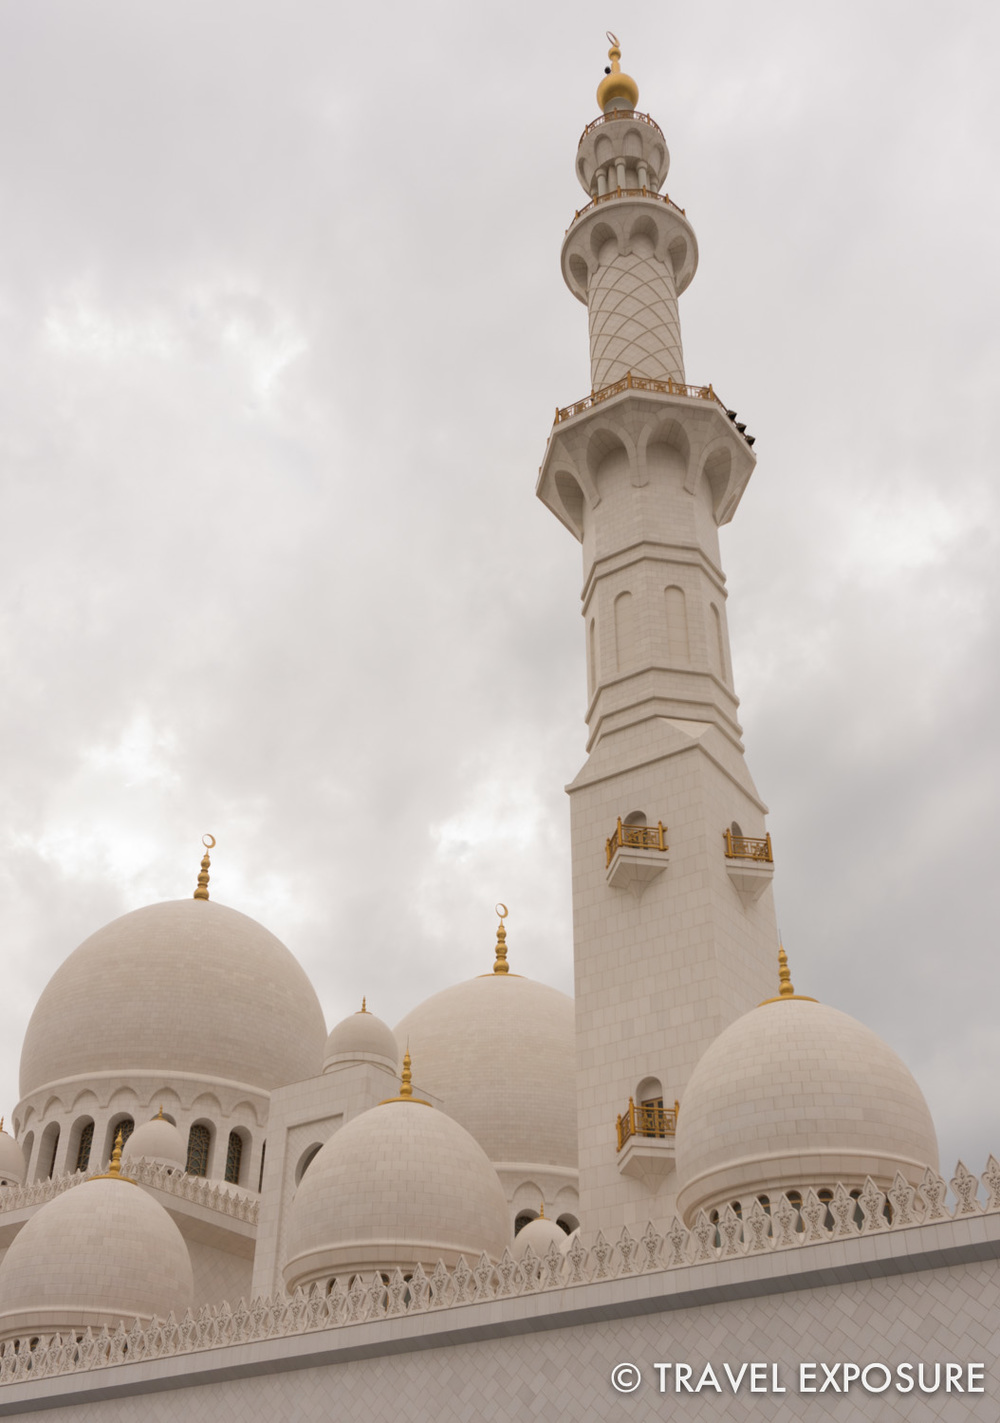 At the Sheikh Zayed Grand Mosque in Abu Dhabi.